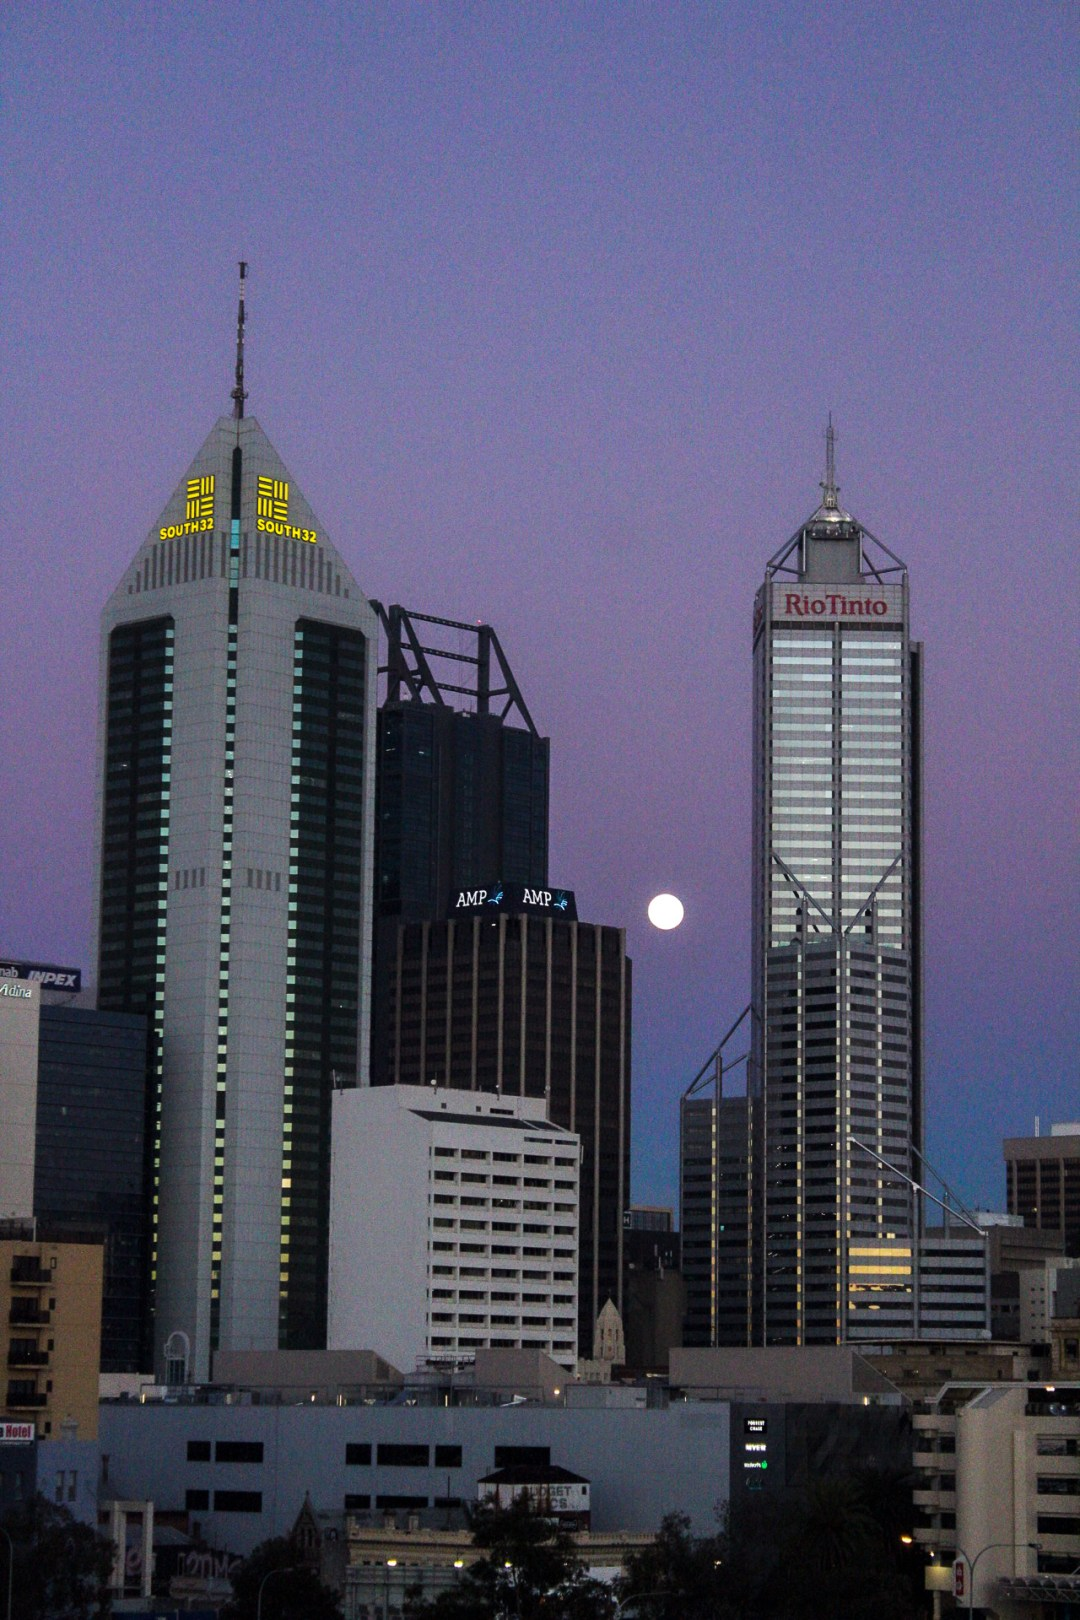 Sunset and moon in Perth CBD